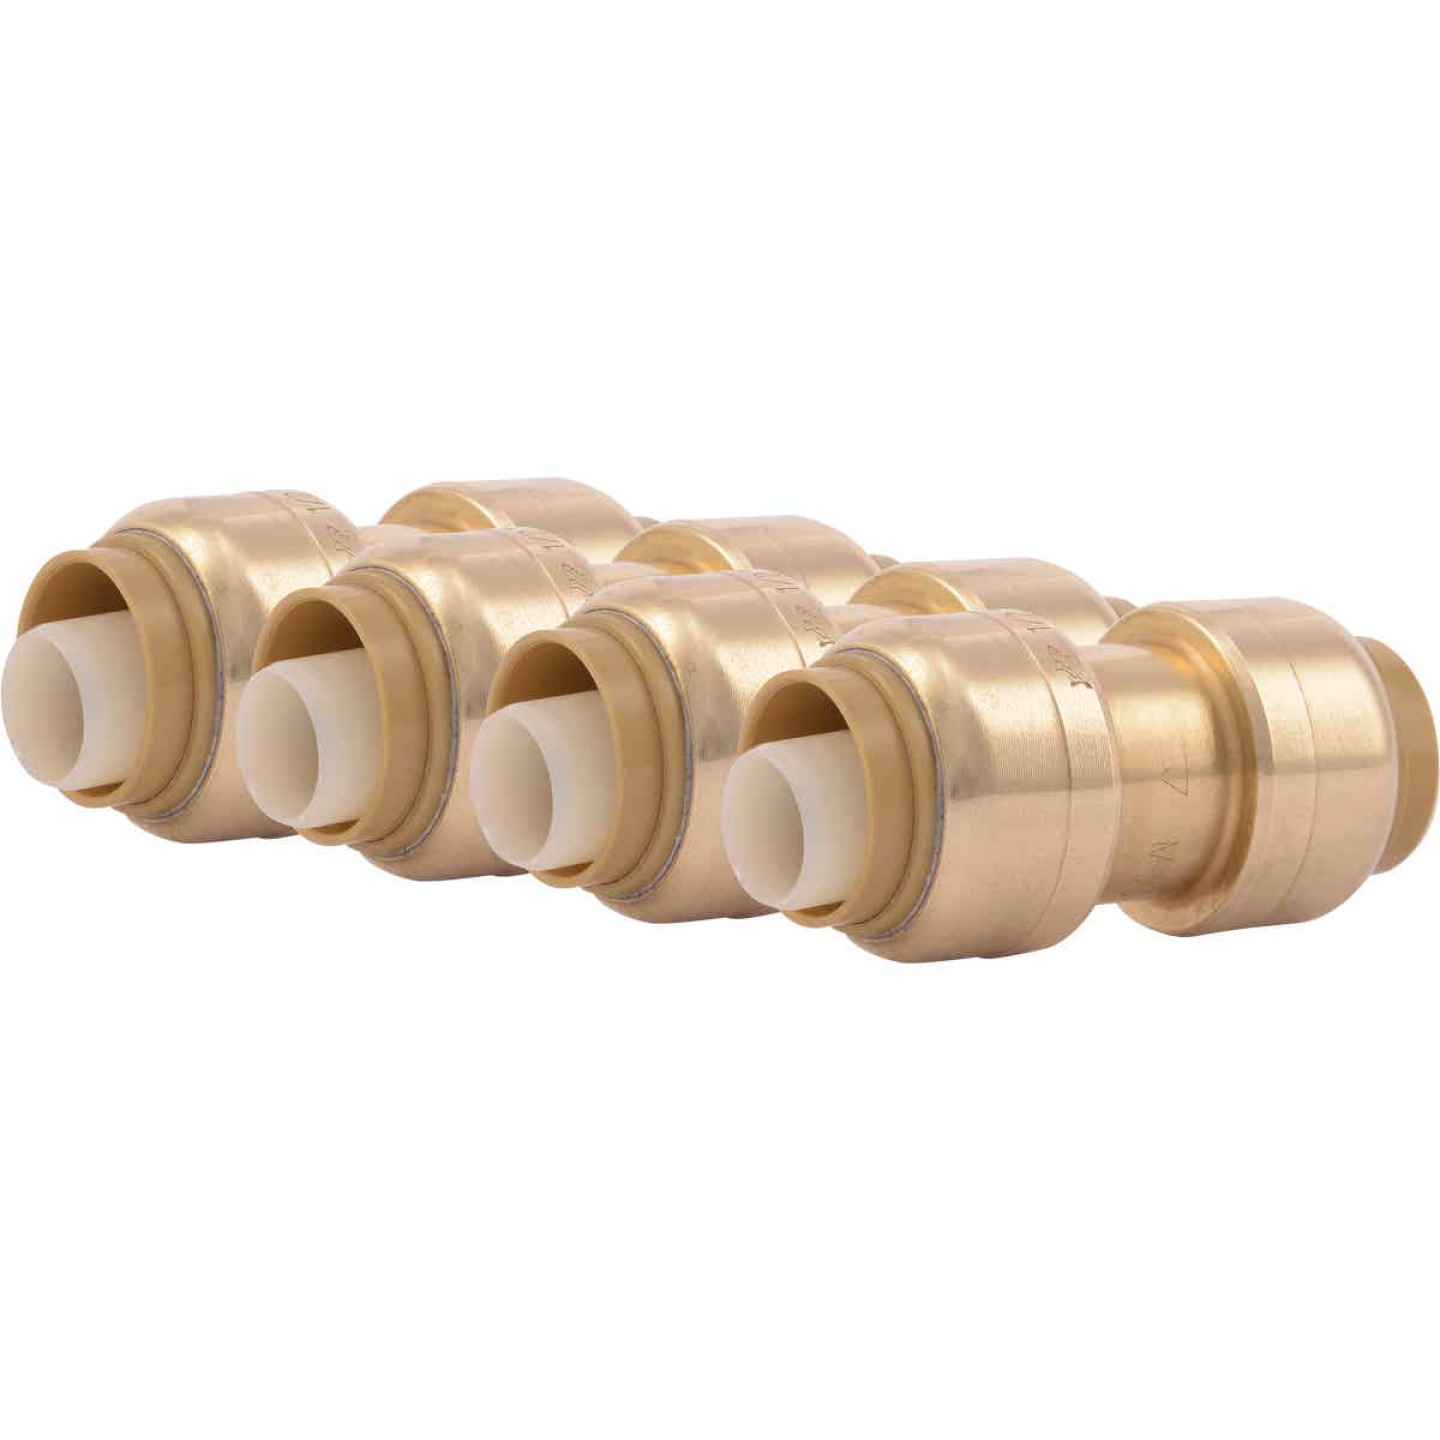 SharkBite 1/2 In. Push-to-Connect Straight Brass Coupling (4-Pack) Image 1